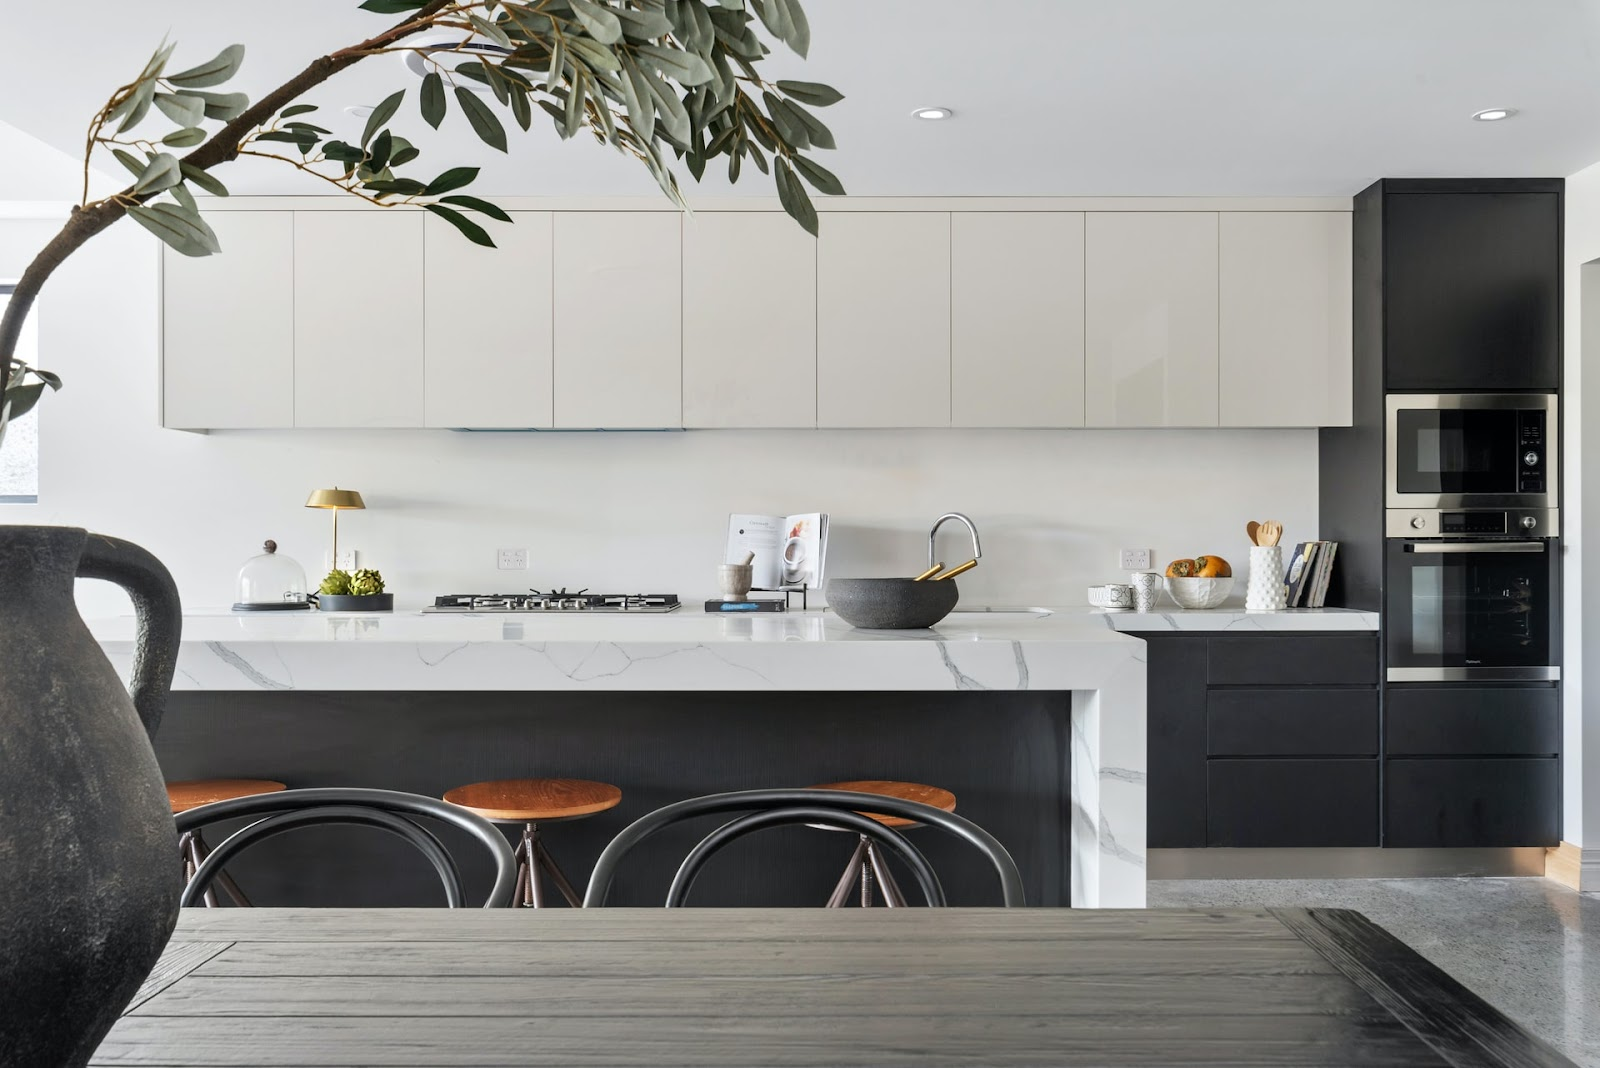 Built-in stove & smooth cabinets for a stylish minimalist kitchen design; kitchen with light grey & black cabinets